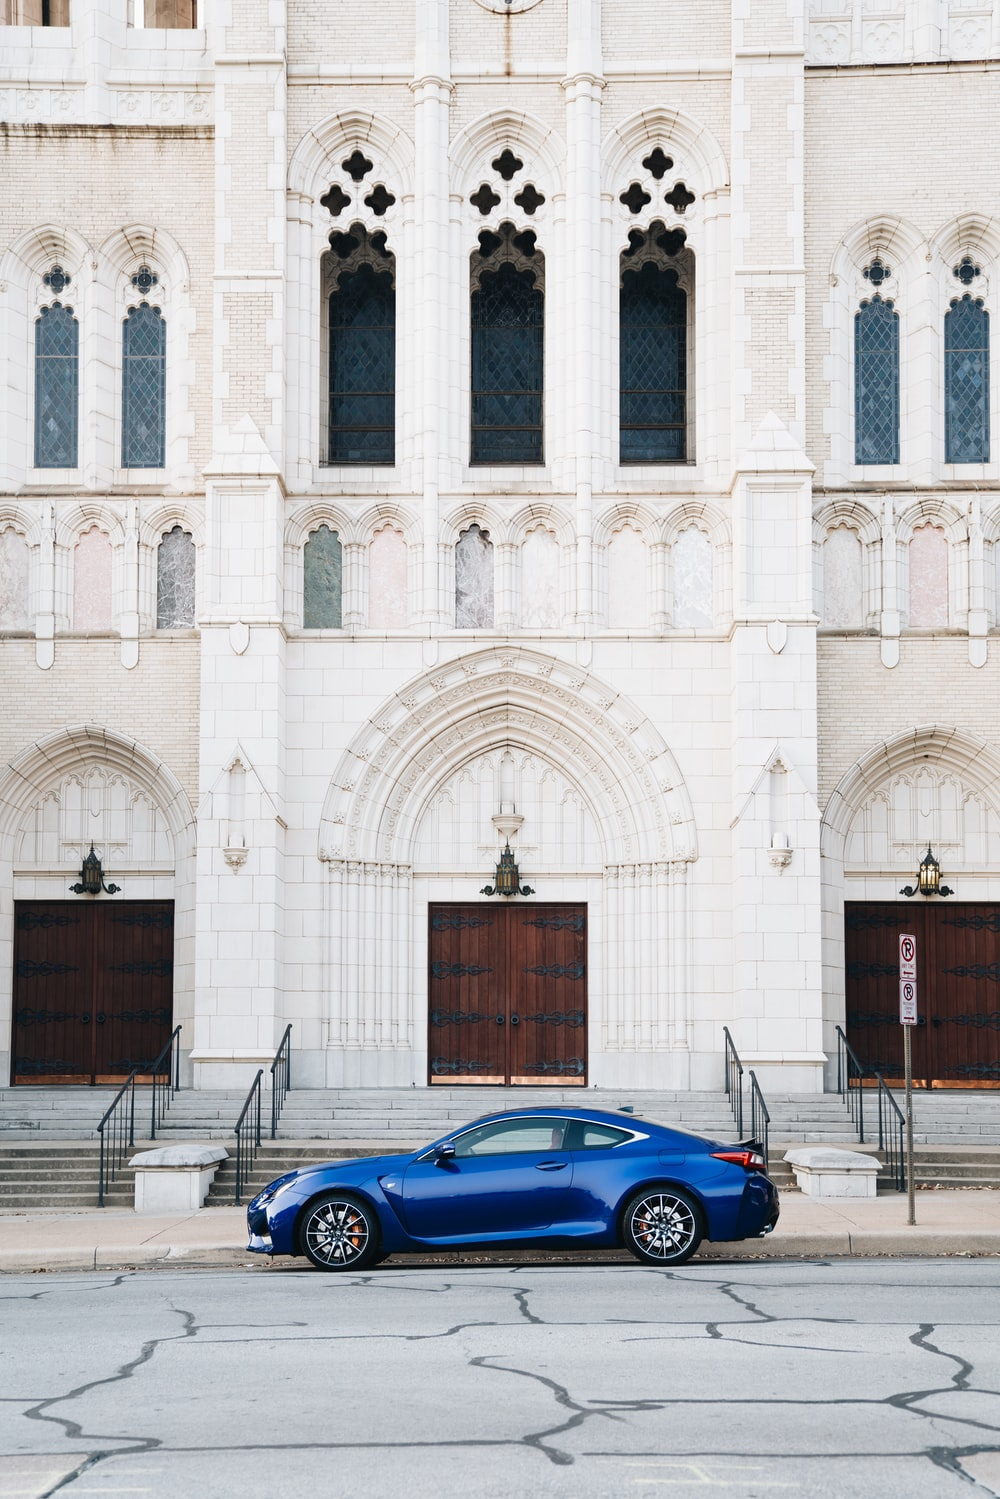 blue coupe parked in front of cathedral